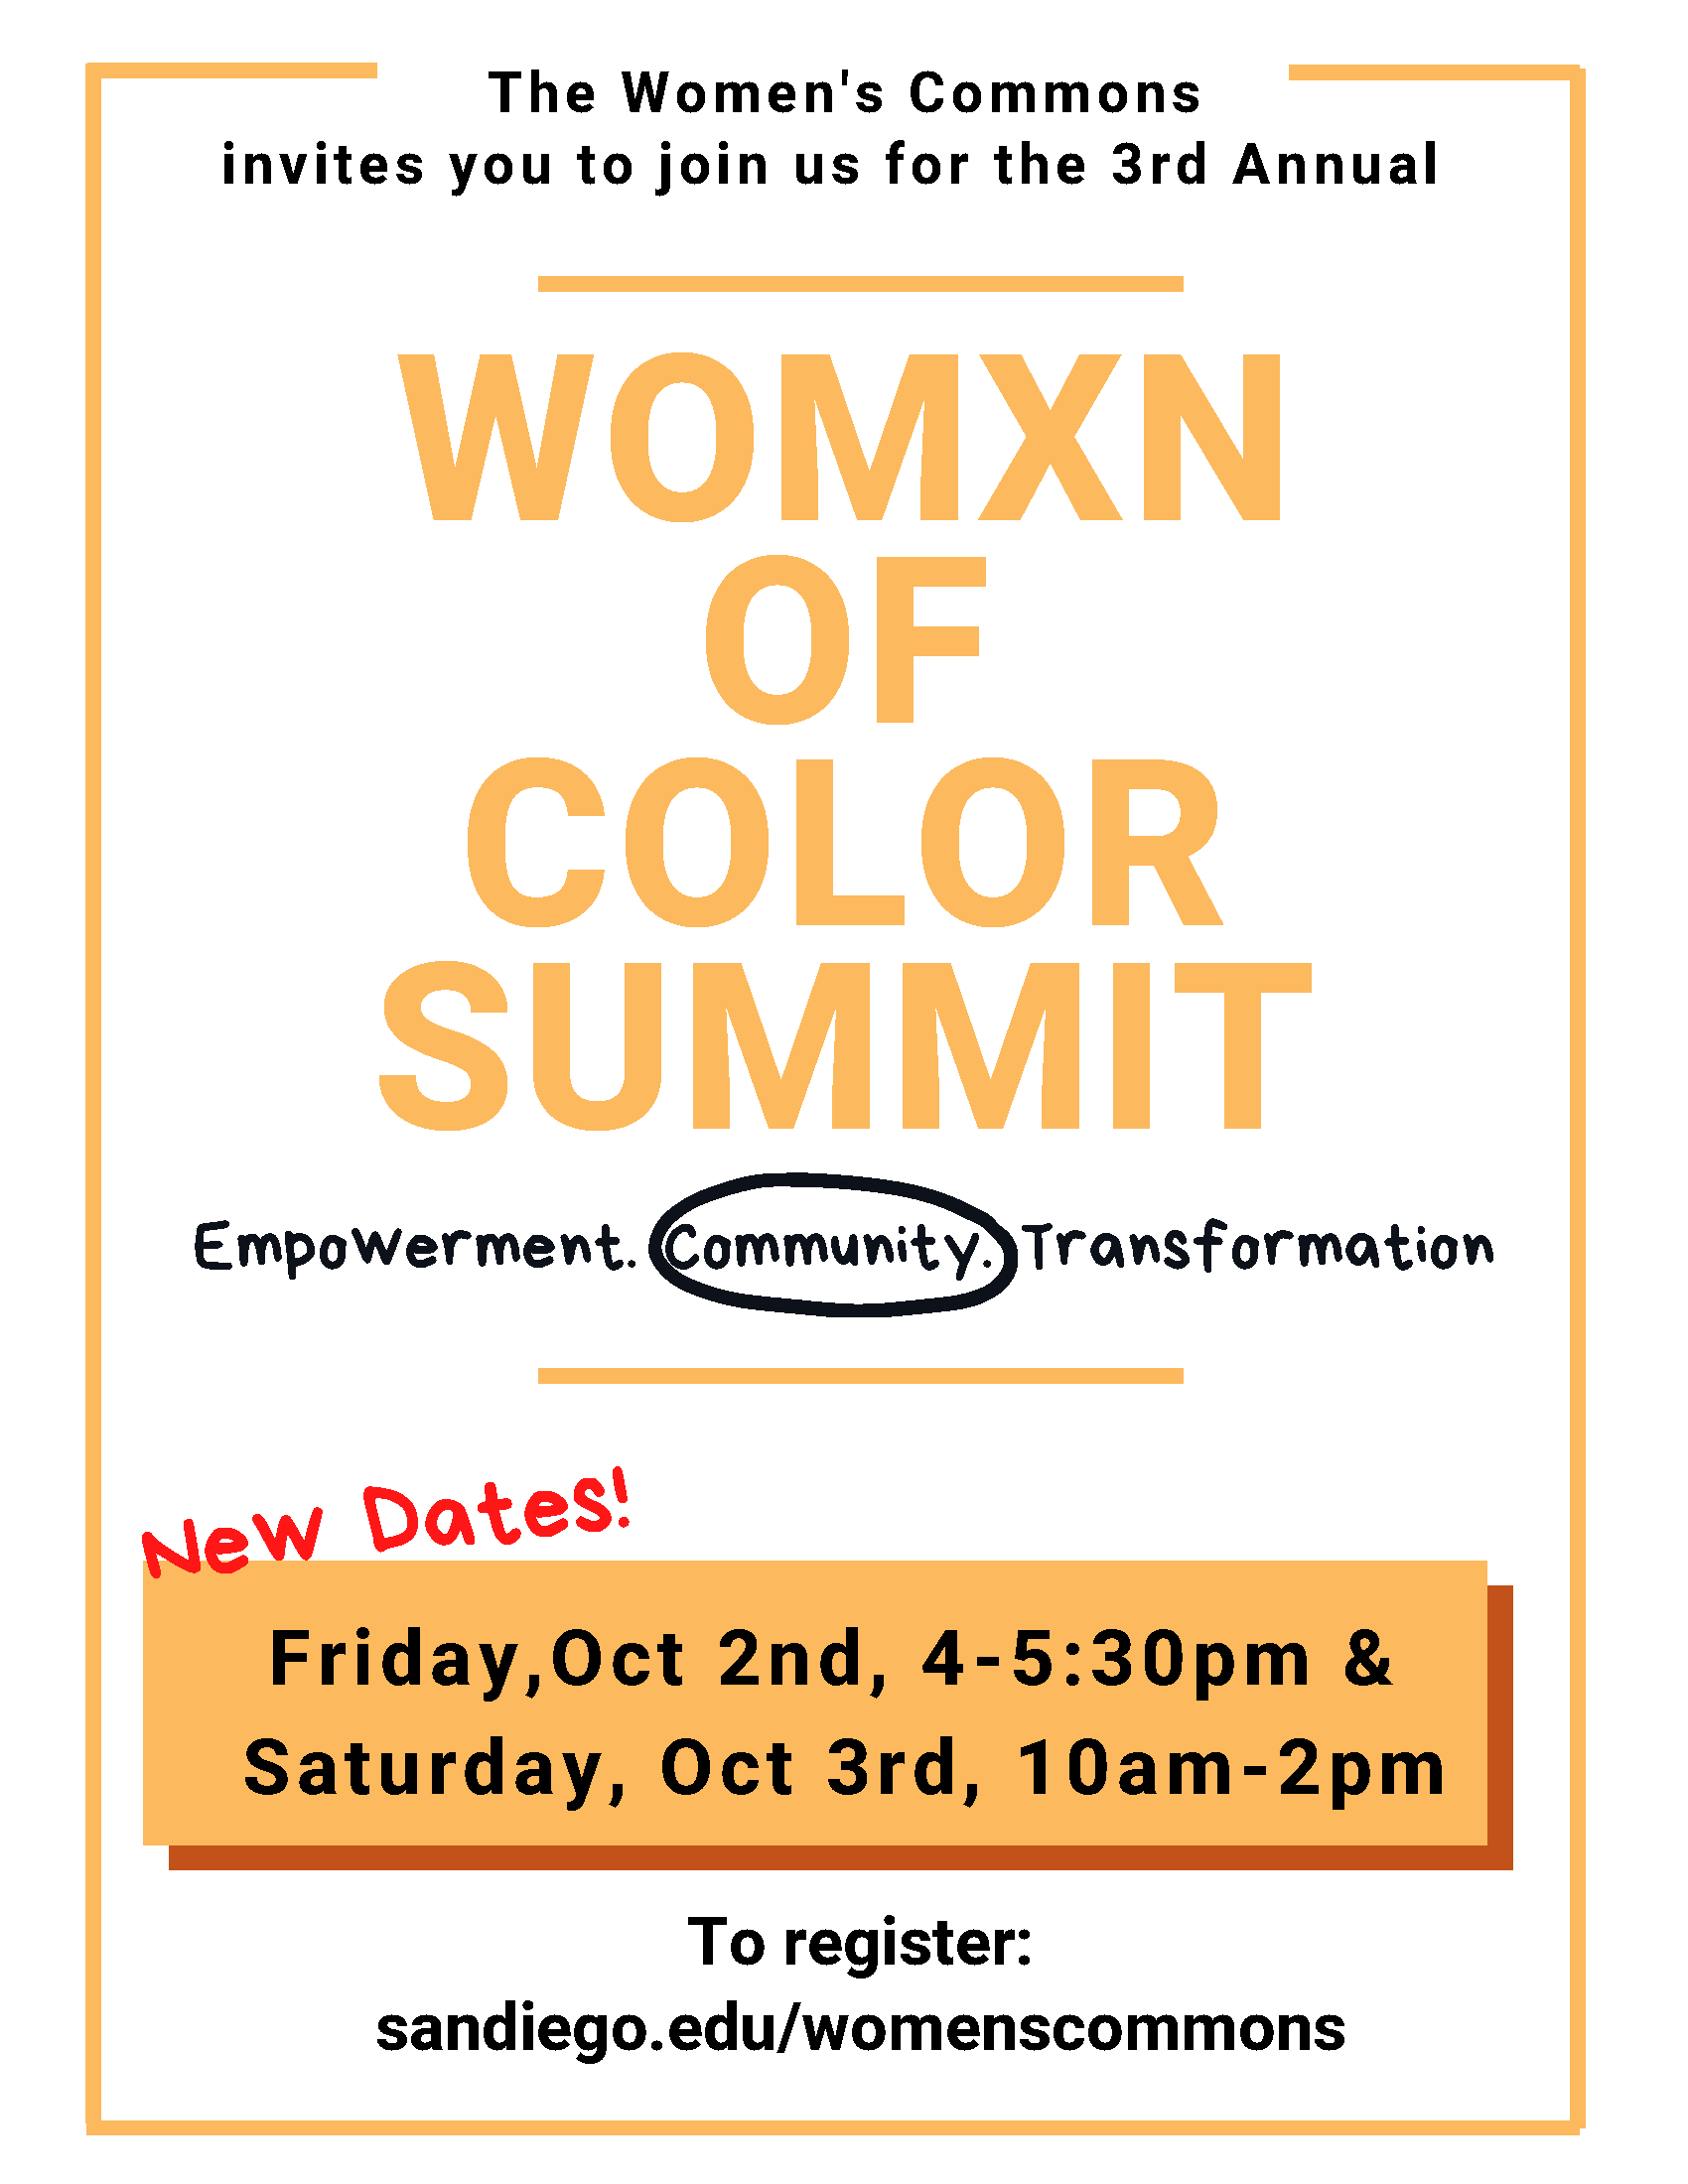 The Women's Commons invites you to join us for the 3rd annual Womxn of Color Summit: empowerment. community. transformation. Fri 9.18 and Sat 9.19